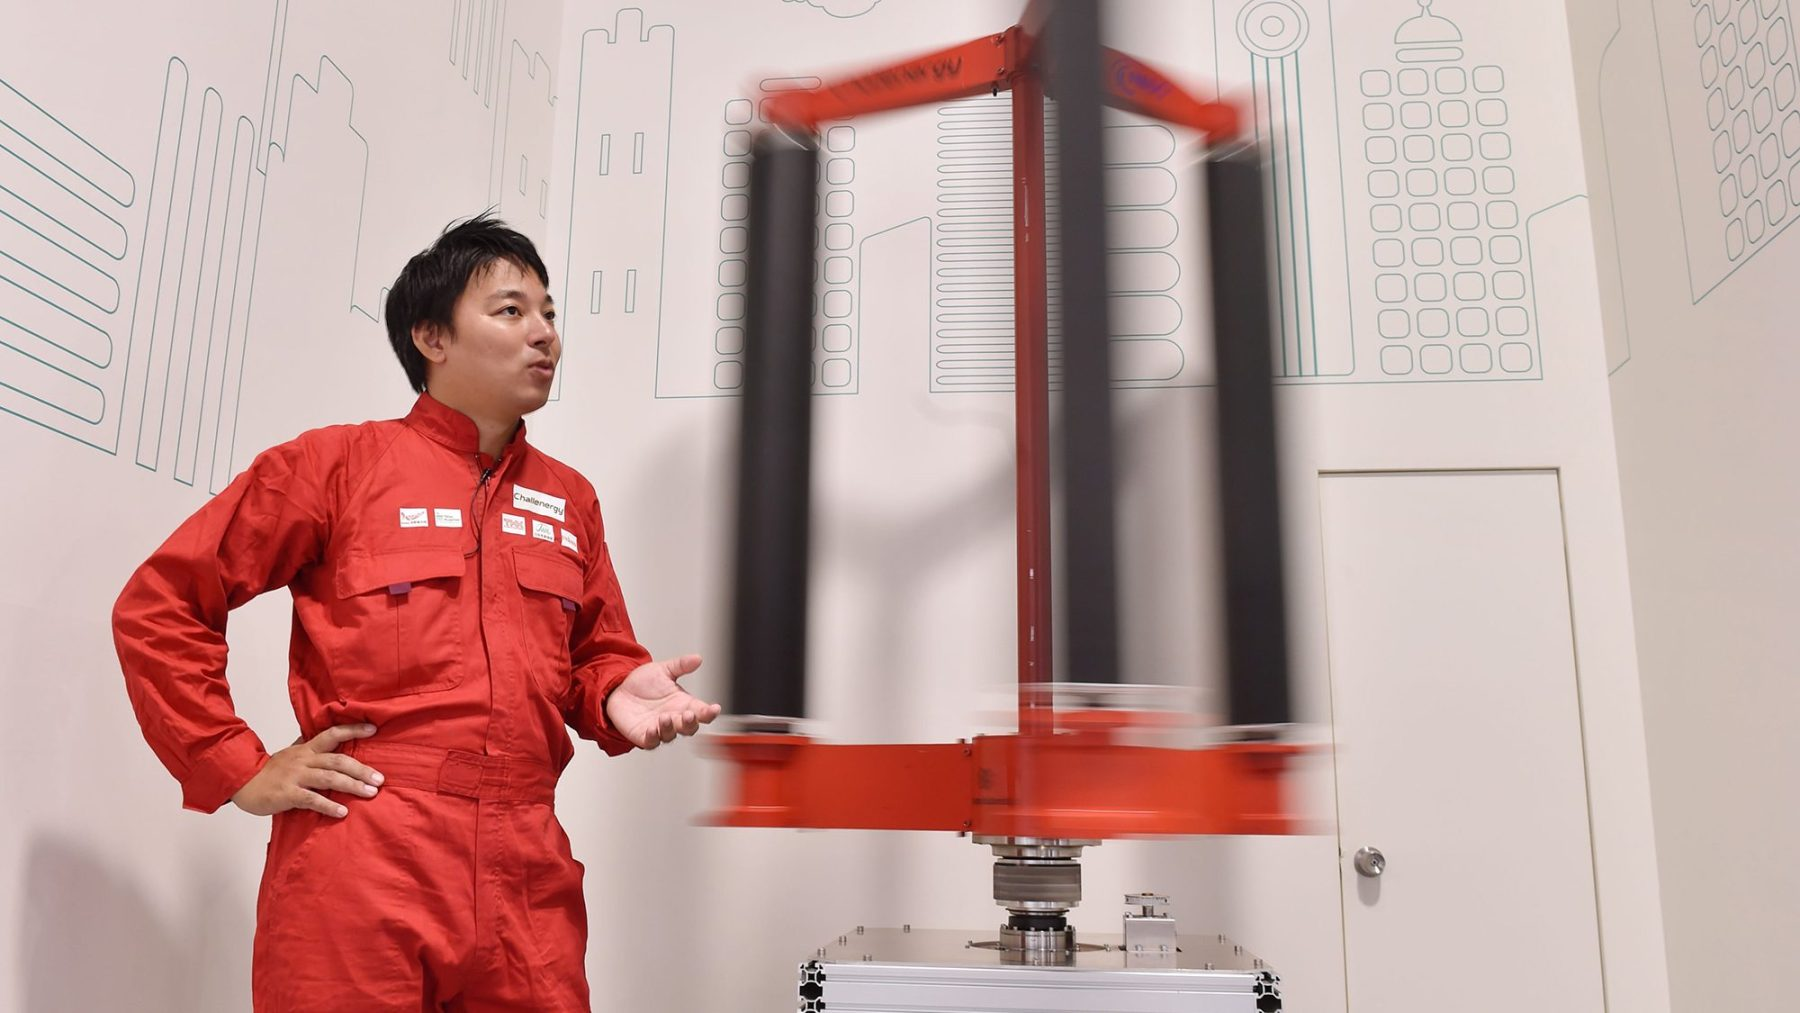 This picture taken on October 20, 2016 shows engineer Atsushi Shimizu, founder and CEO of the Japanese venture company Challenergy, standing next to his bladeless wind turbine in Tokyo. The amount of electricity produced by wind nearly doubled in 2016 from a year earlier, according to a recent survey by the Japan Wind Power Association. But wind power's share of Japan's total energy mix is still less than one percent. / AFP PHOTO / Kazuhiro NOGI / TO GO WITH Japan-energy-environment,FOCUS by Harumi Ozawa        (Photo credit should read KAZUHIRO NOGI/AFP/Getty Images)